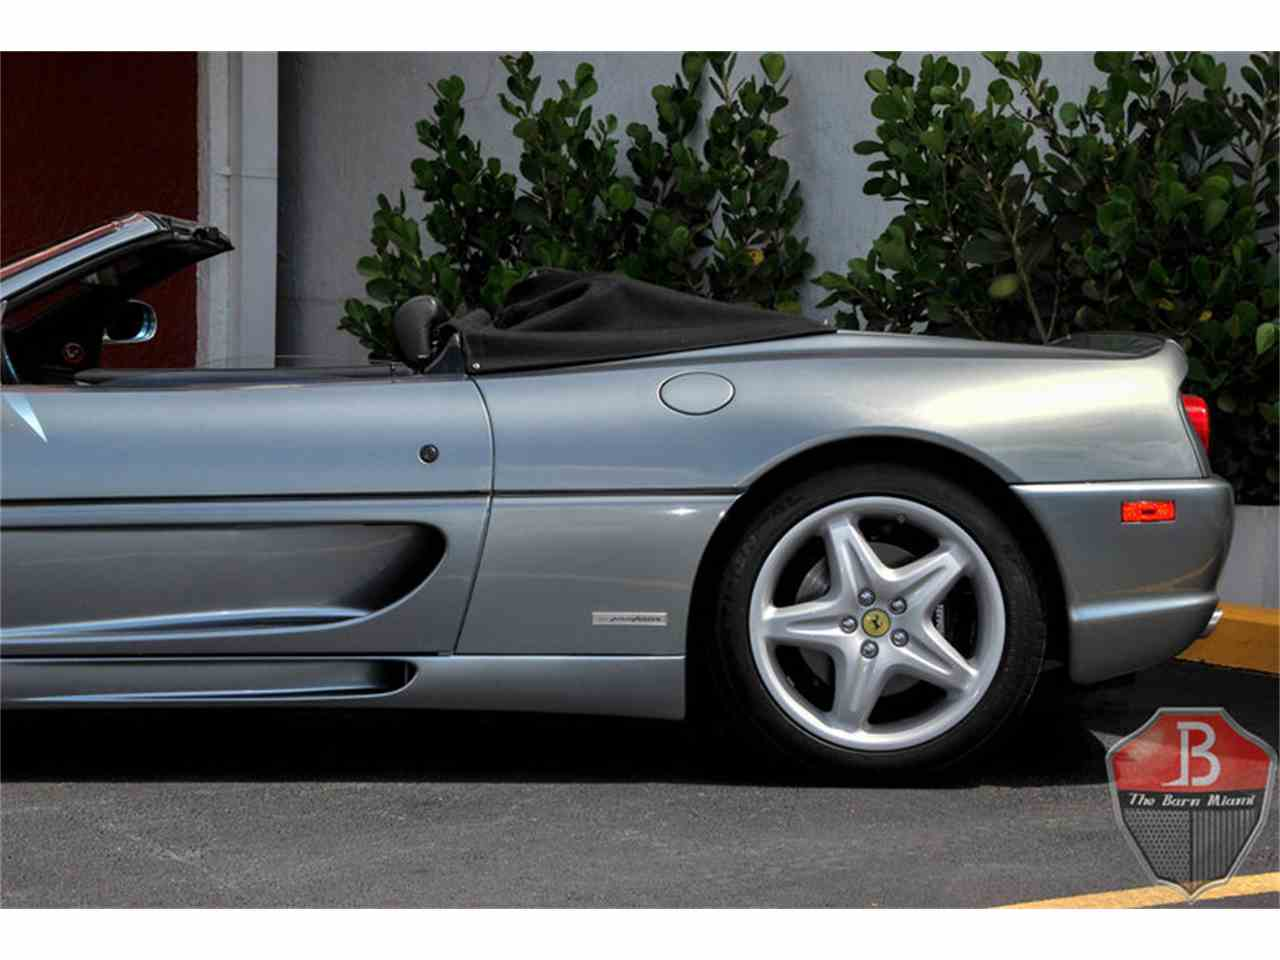 Large Picture of 1997 Ferrari 355 located in Florida - $74,900.00 Offered by The Barn Miami - IZWQ